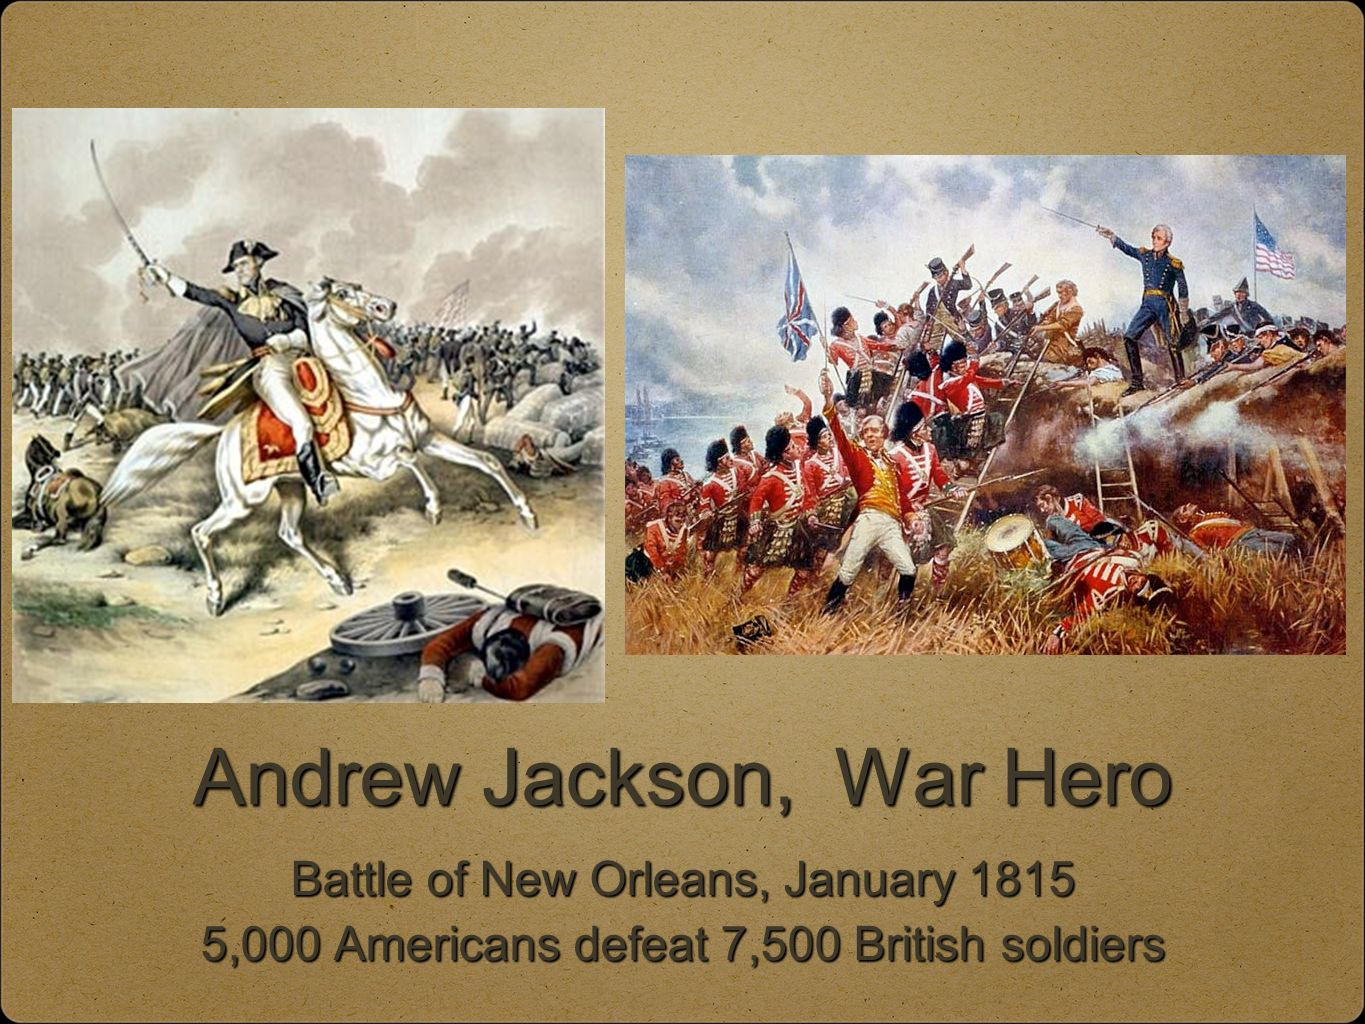 andrew jackson the sharp knife essay Andrew jackson, i am given to understand, was a patriot and a traitor jackson came under sharp attack from historians on this issue.